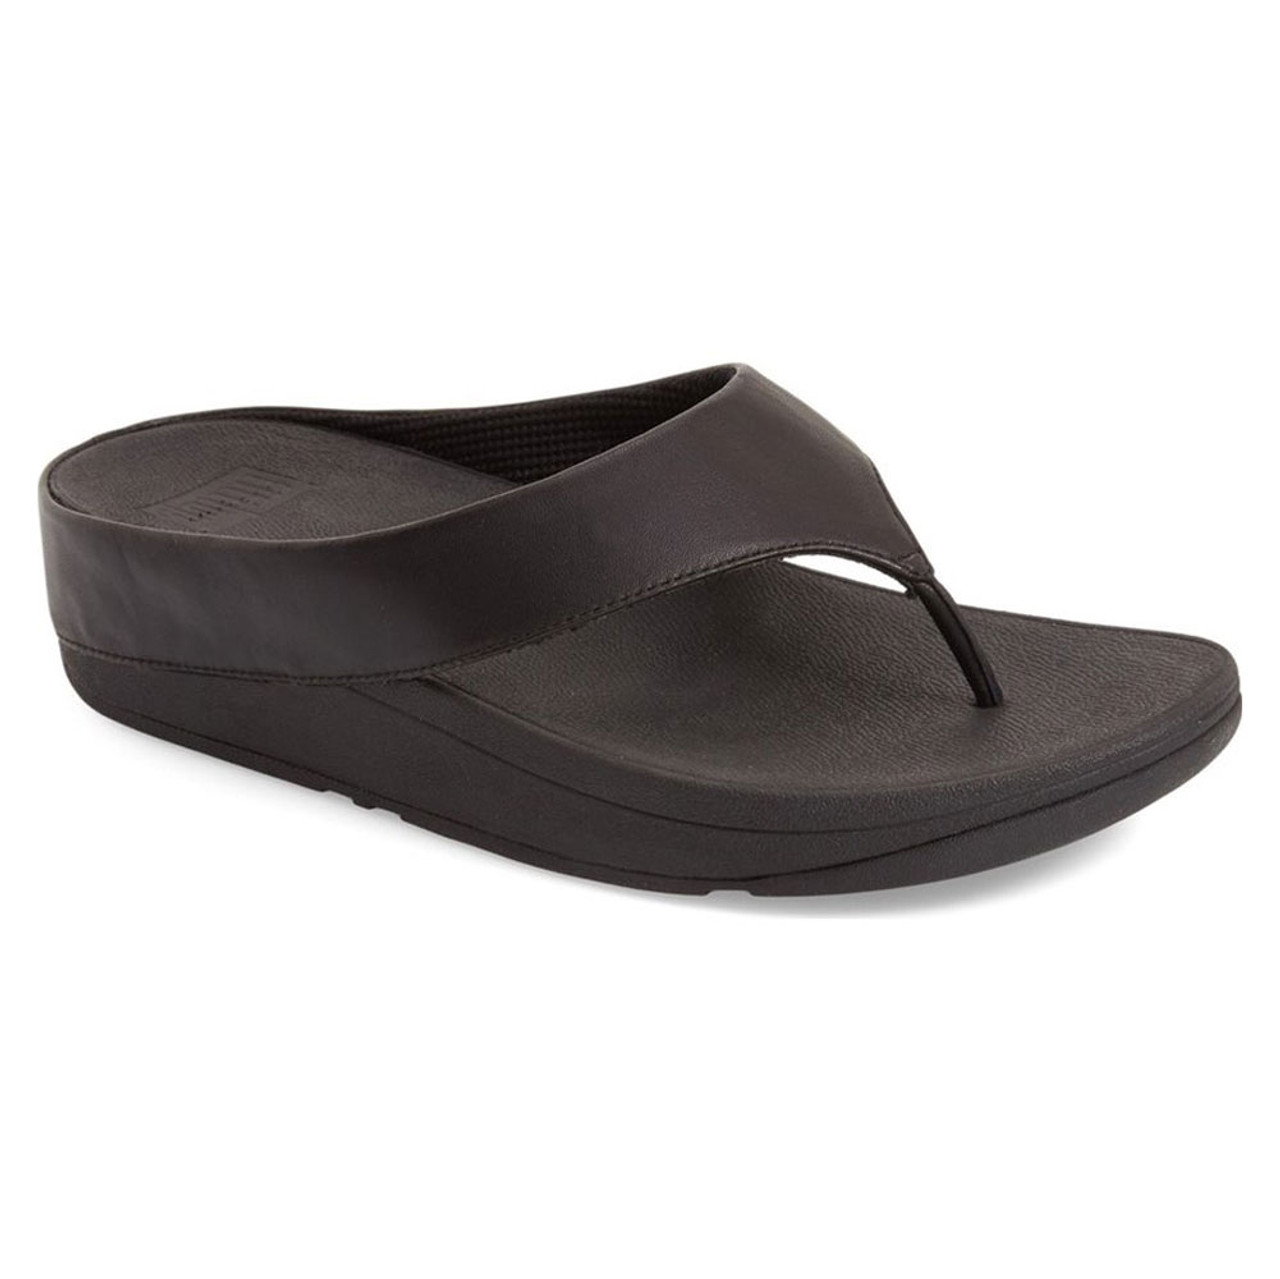 c0a1423cf5da Fitflop Women s Ringer Toe Post Thong All Black - Shop now   Shoolu.com